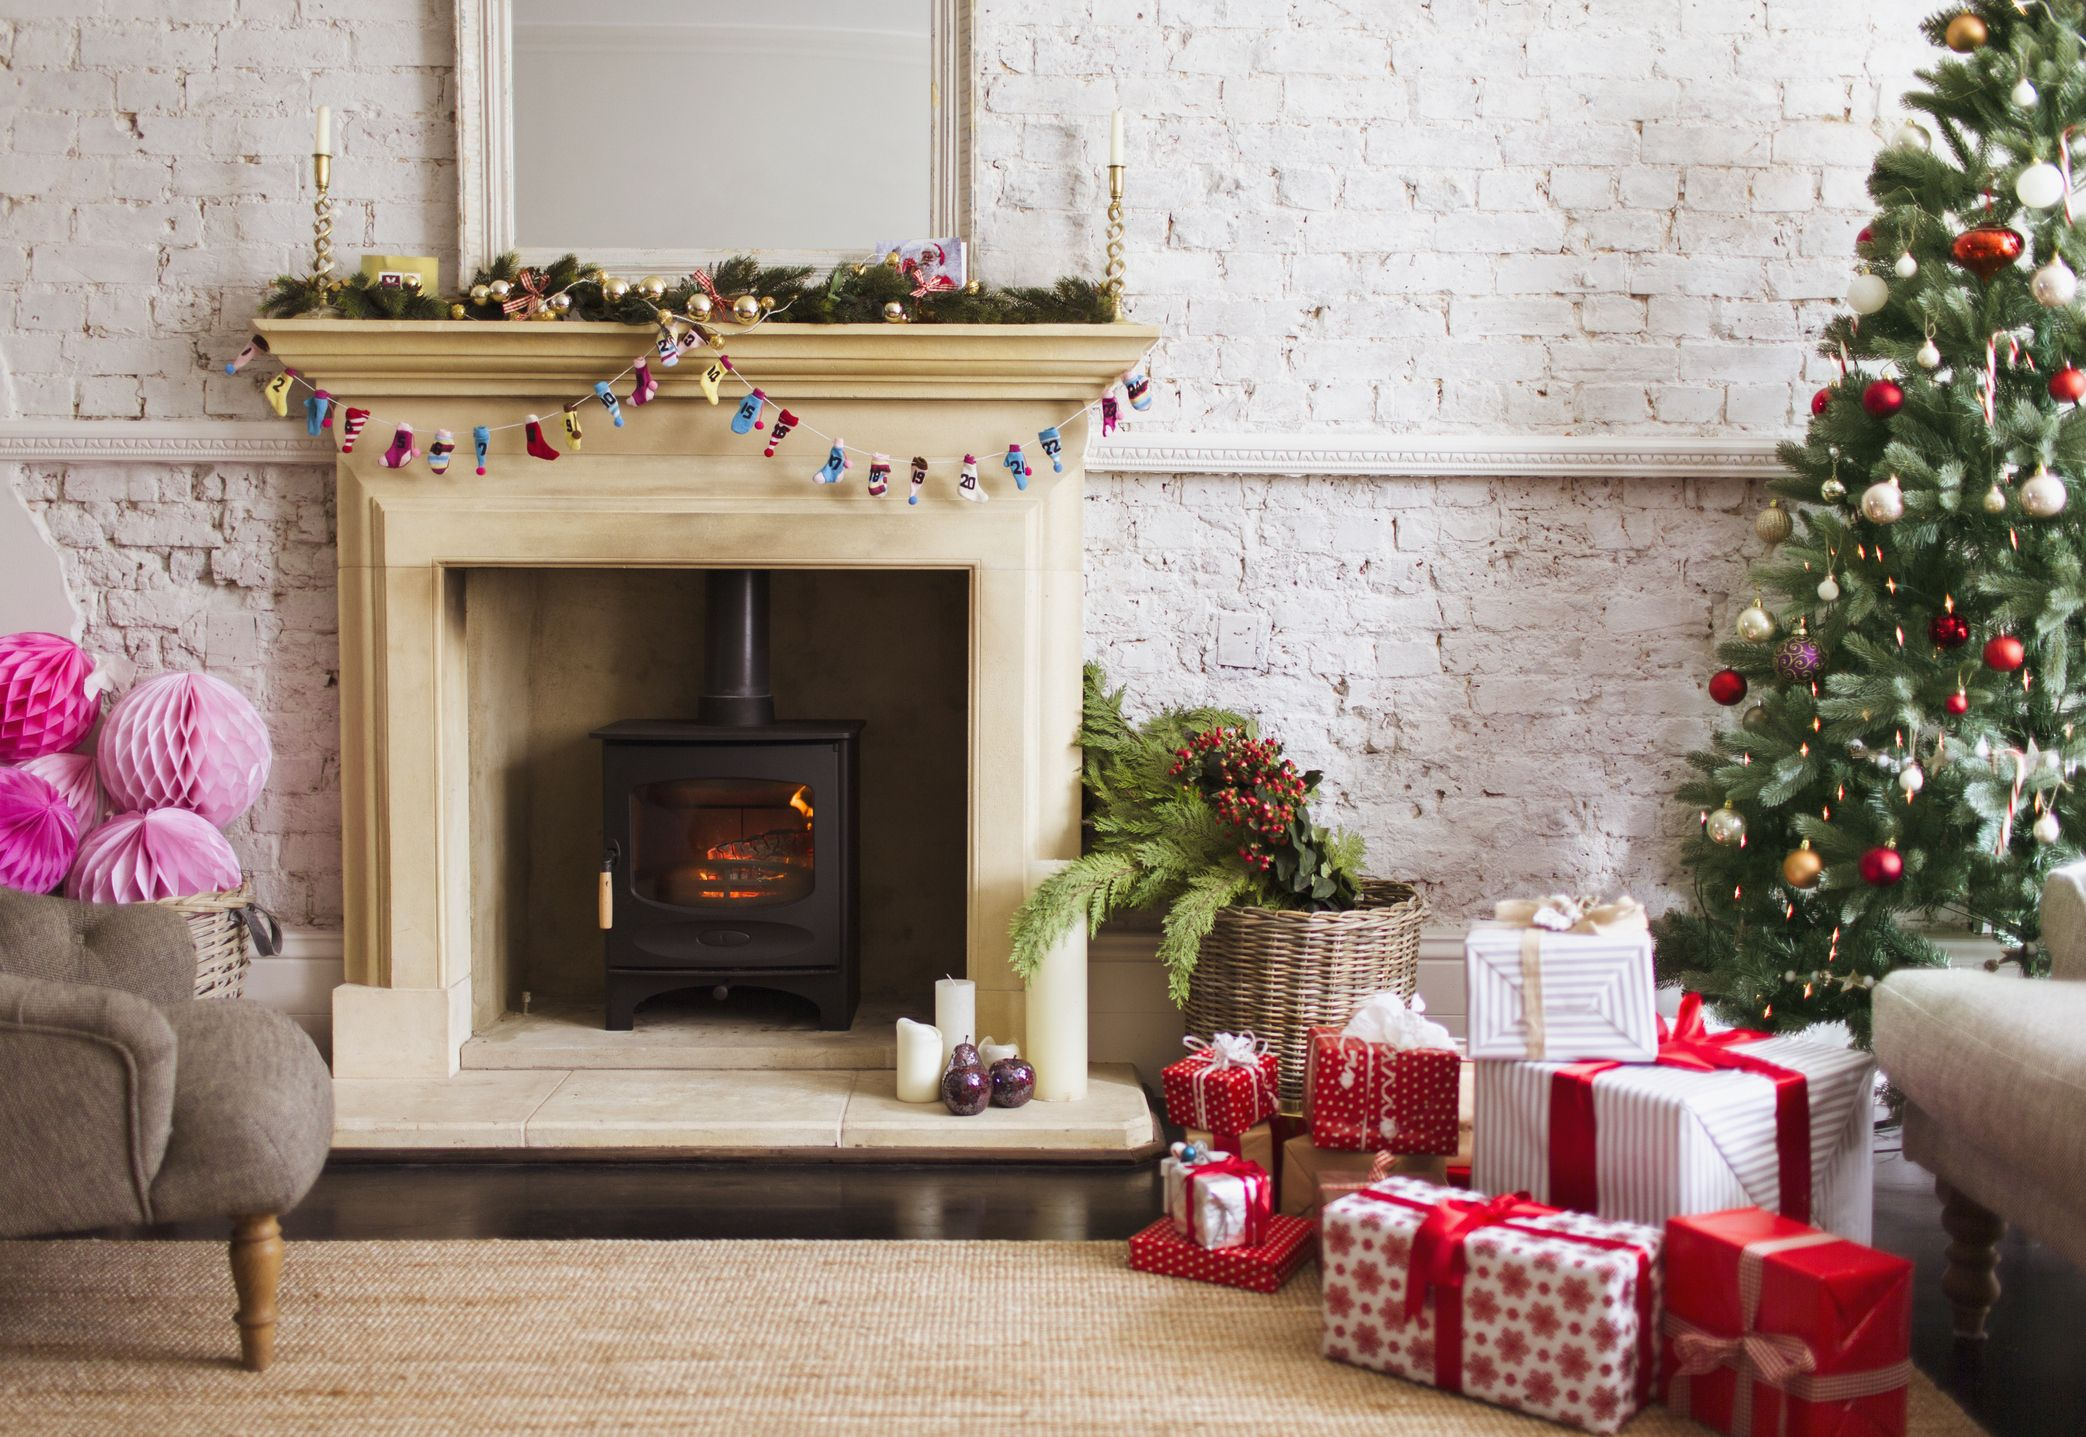 Christmas Mantel Ideas.25 Christmas Mantel Decor Ideas Fireplace Holiday Decorations